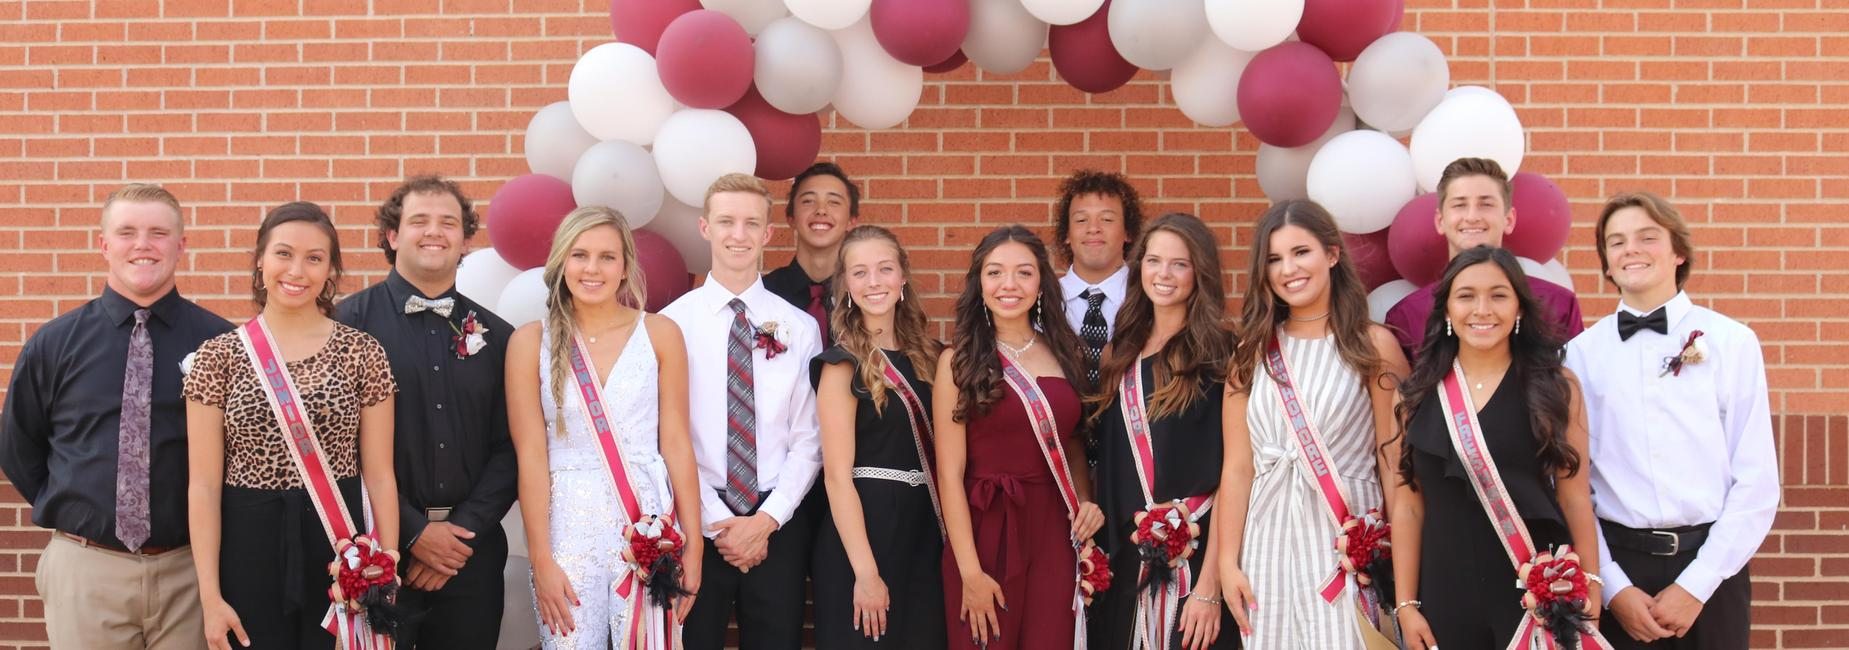 Homecoming court pose in front of balloon archway